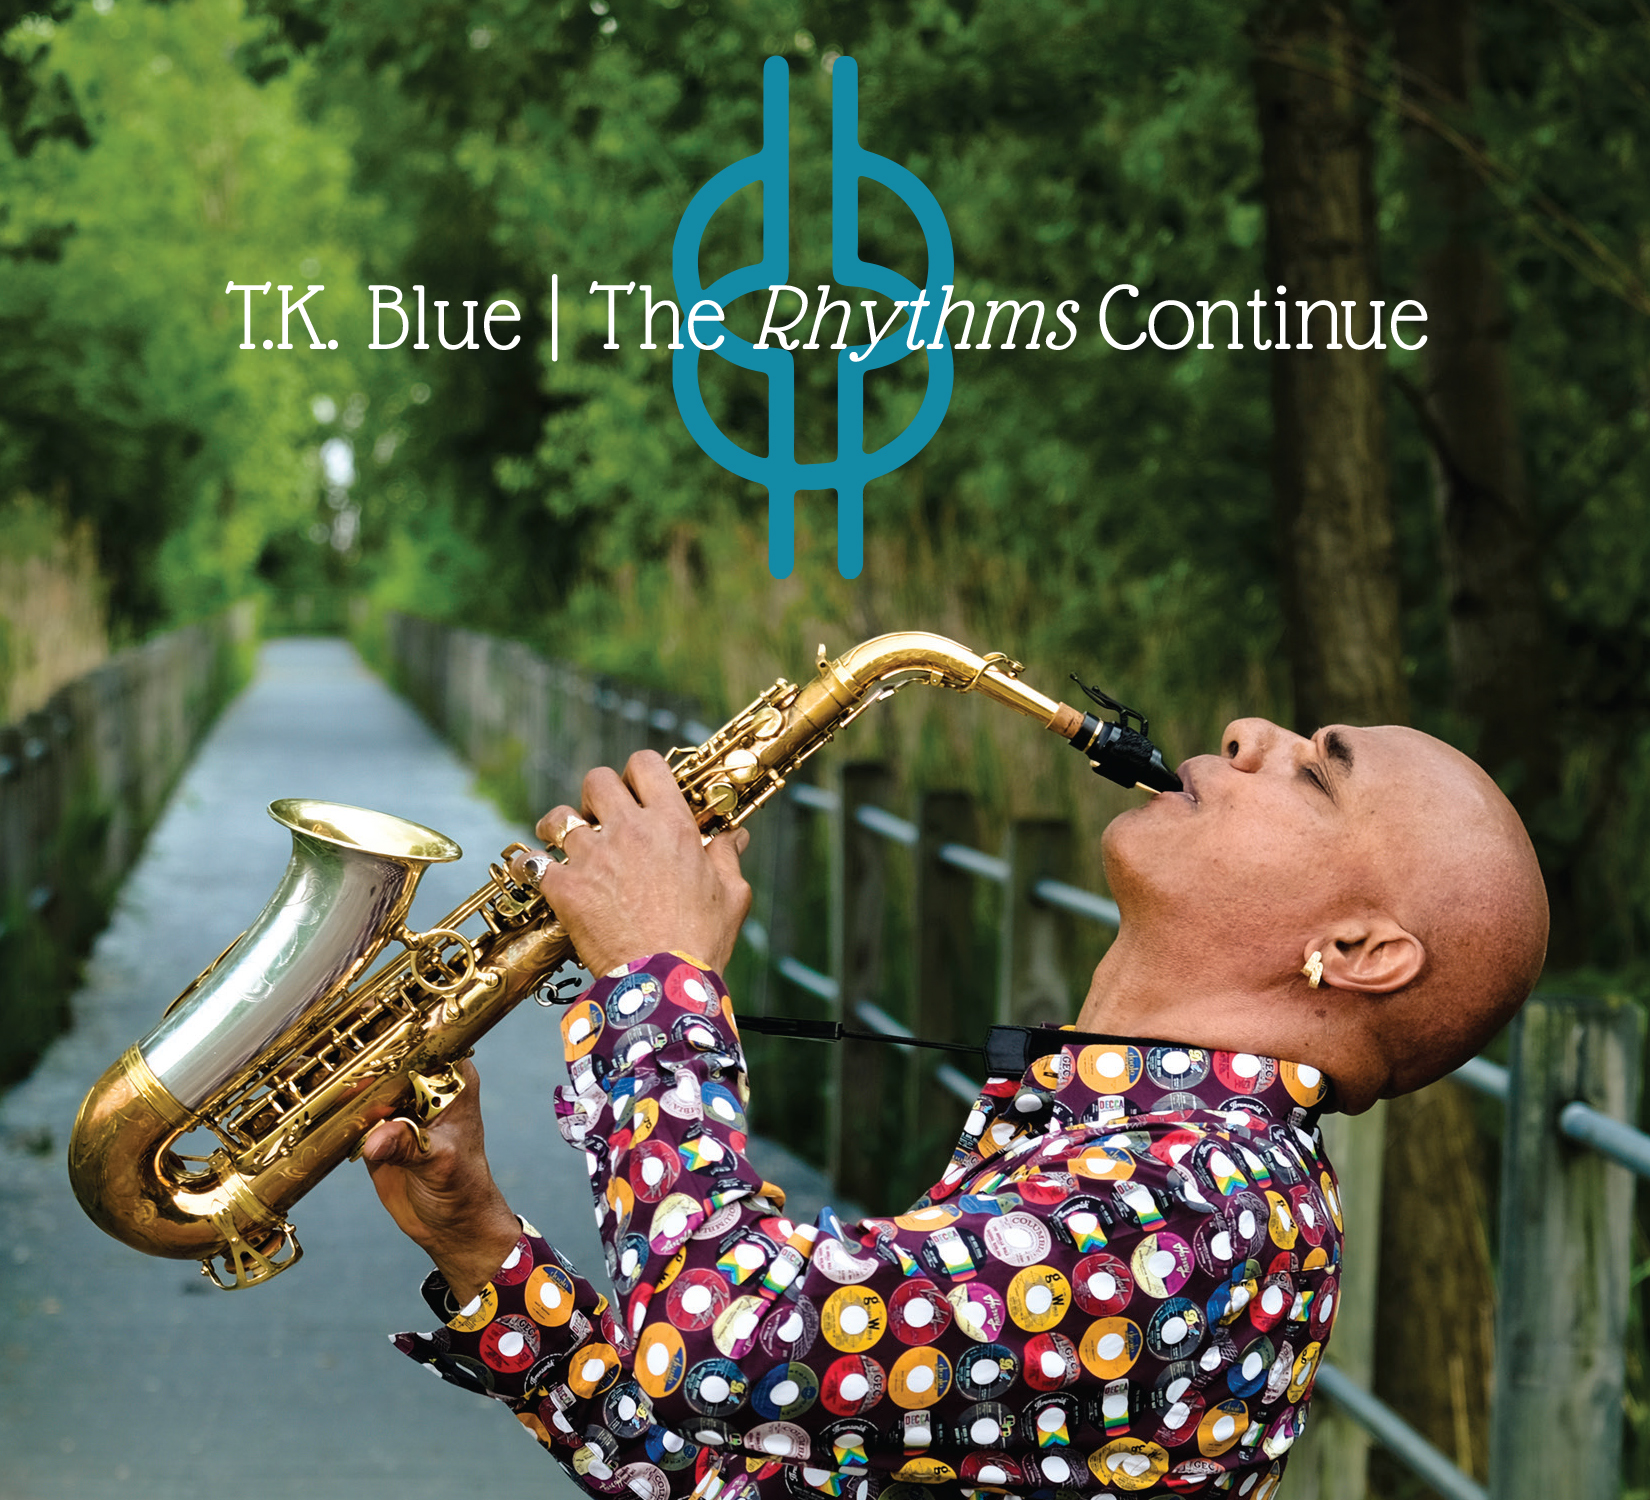 NEW RELEASE: T.K. Blue Honors Randy Weston with 'The Rhythms Continue', out 11/1 on JAJA Records